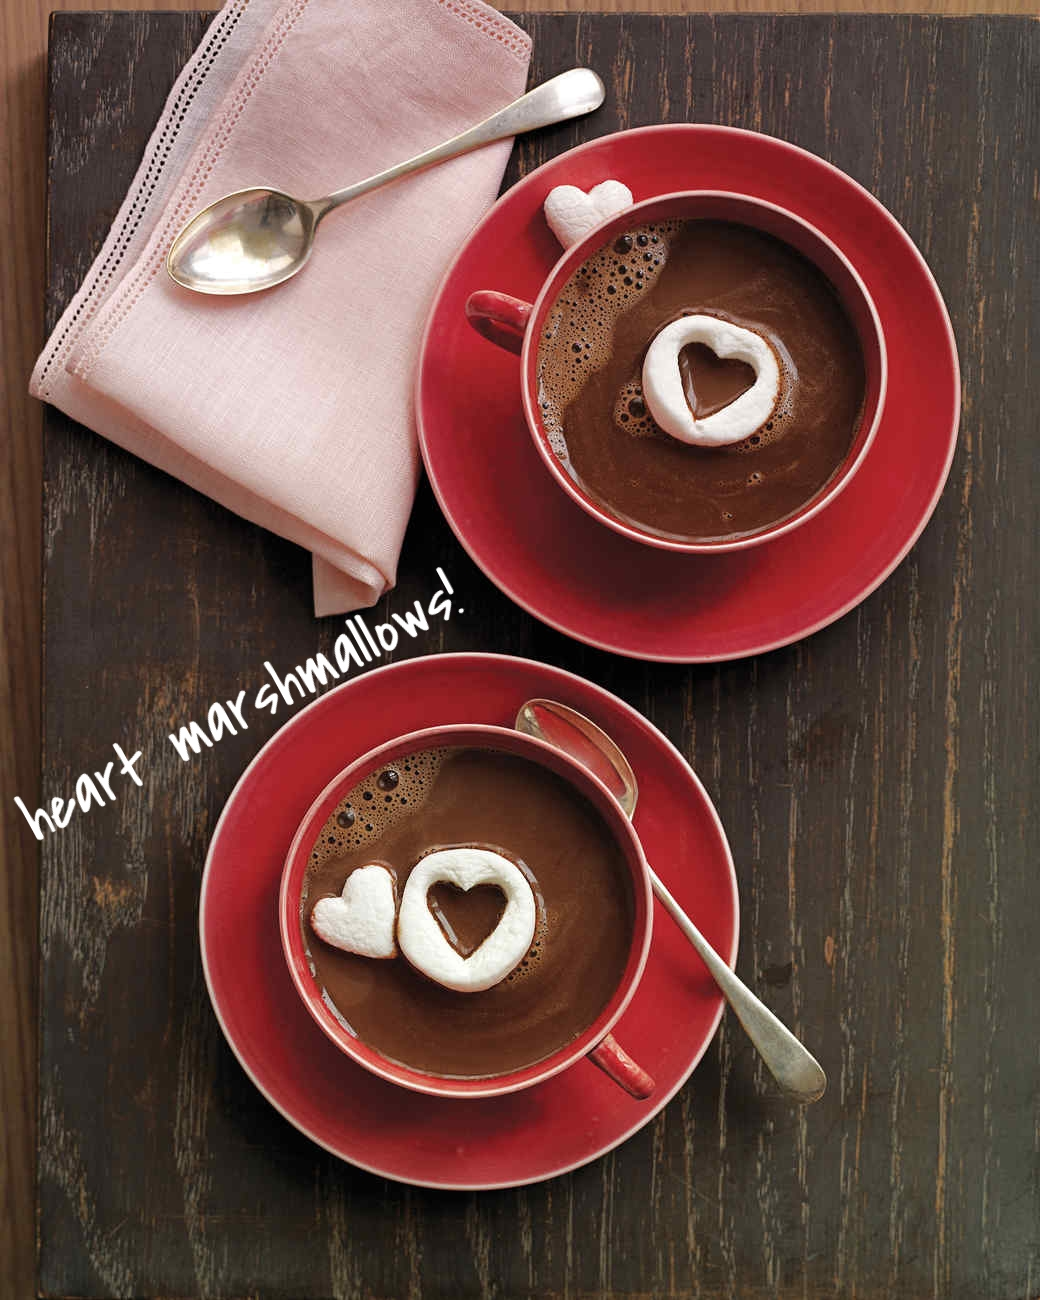 Here's a quick way to add some lovin' to your hot chocolate! Grab some large marshmallows and chop them in half. Get a sharp knife and cut out a heart in the center of your marshmallow - Place both cut-outs in your hot chocolate and you're good to go